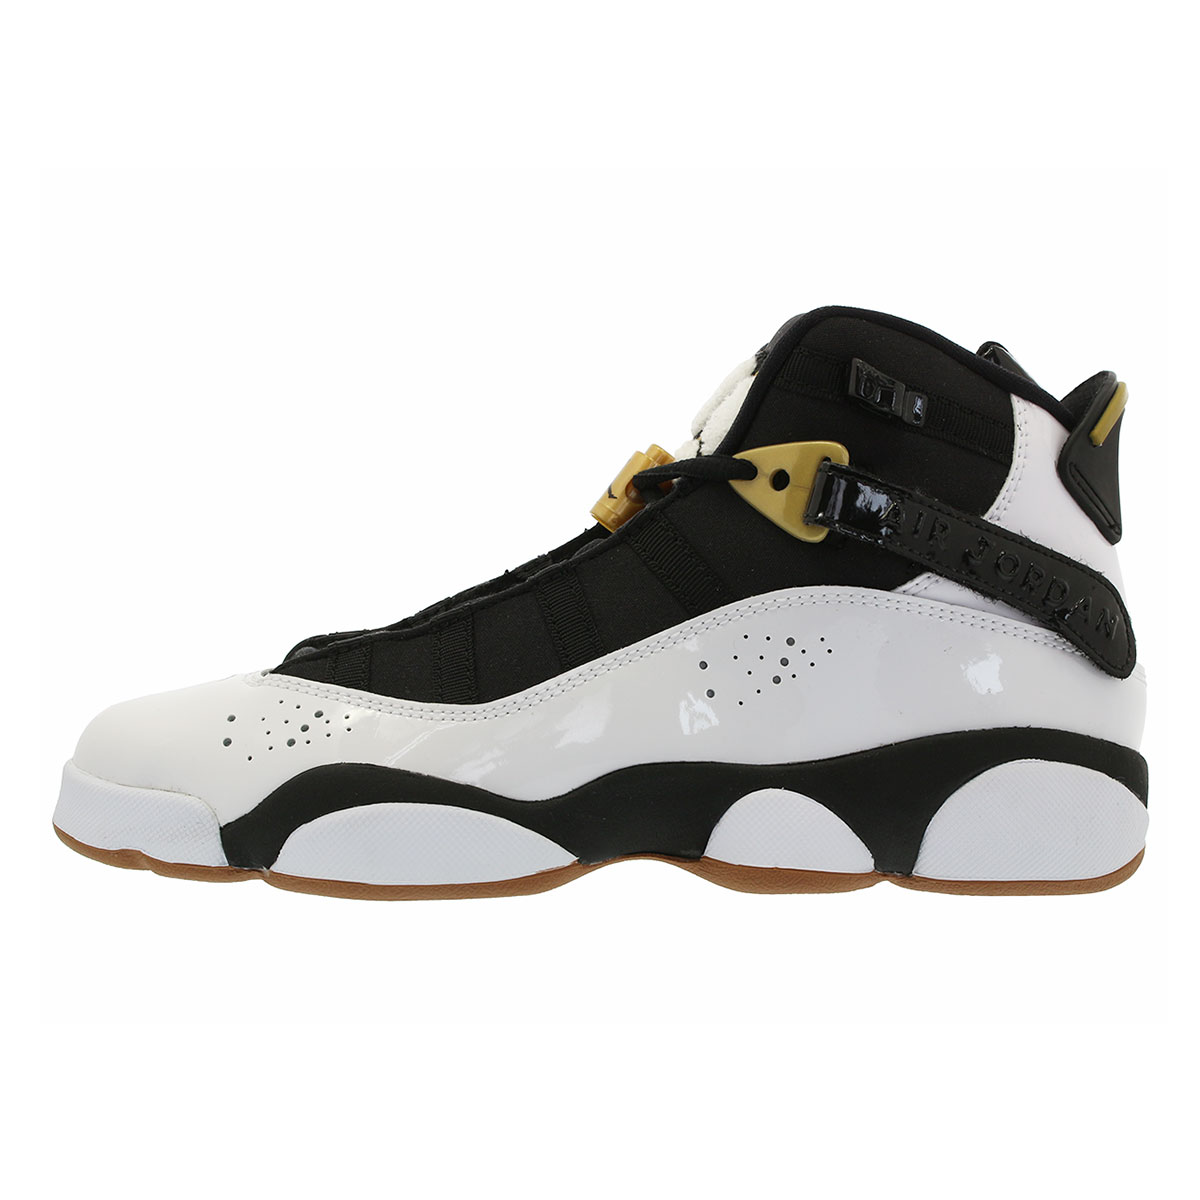 ... Black White Gym Red  NIKE AIR JORDAN 6 RINGS GG Nike Air Jordan 6 RINGS  Co. c6082f848